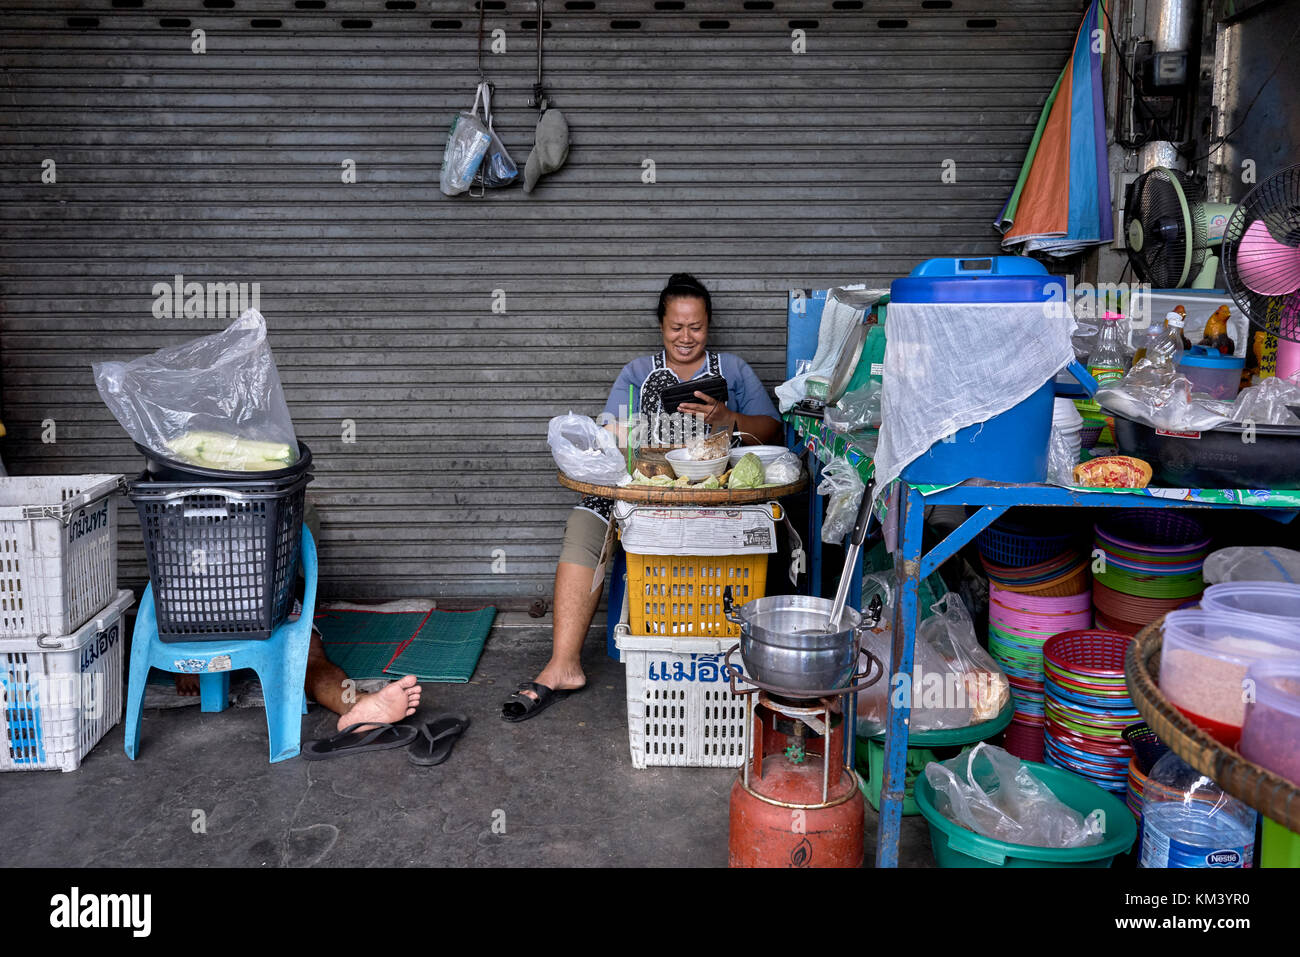 Funny and humorous Thailand street scene with protruding leg of a man asleep - Stock Image